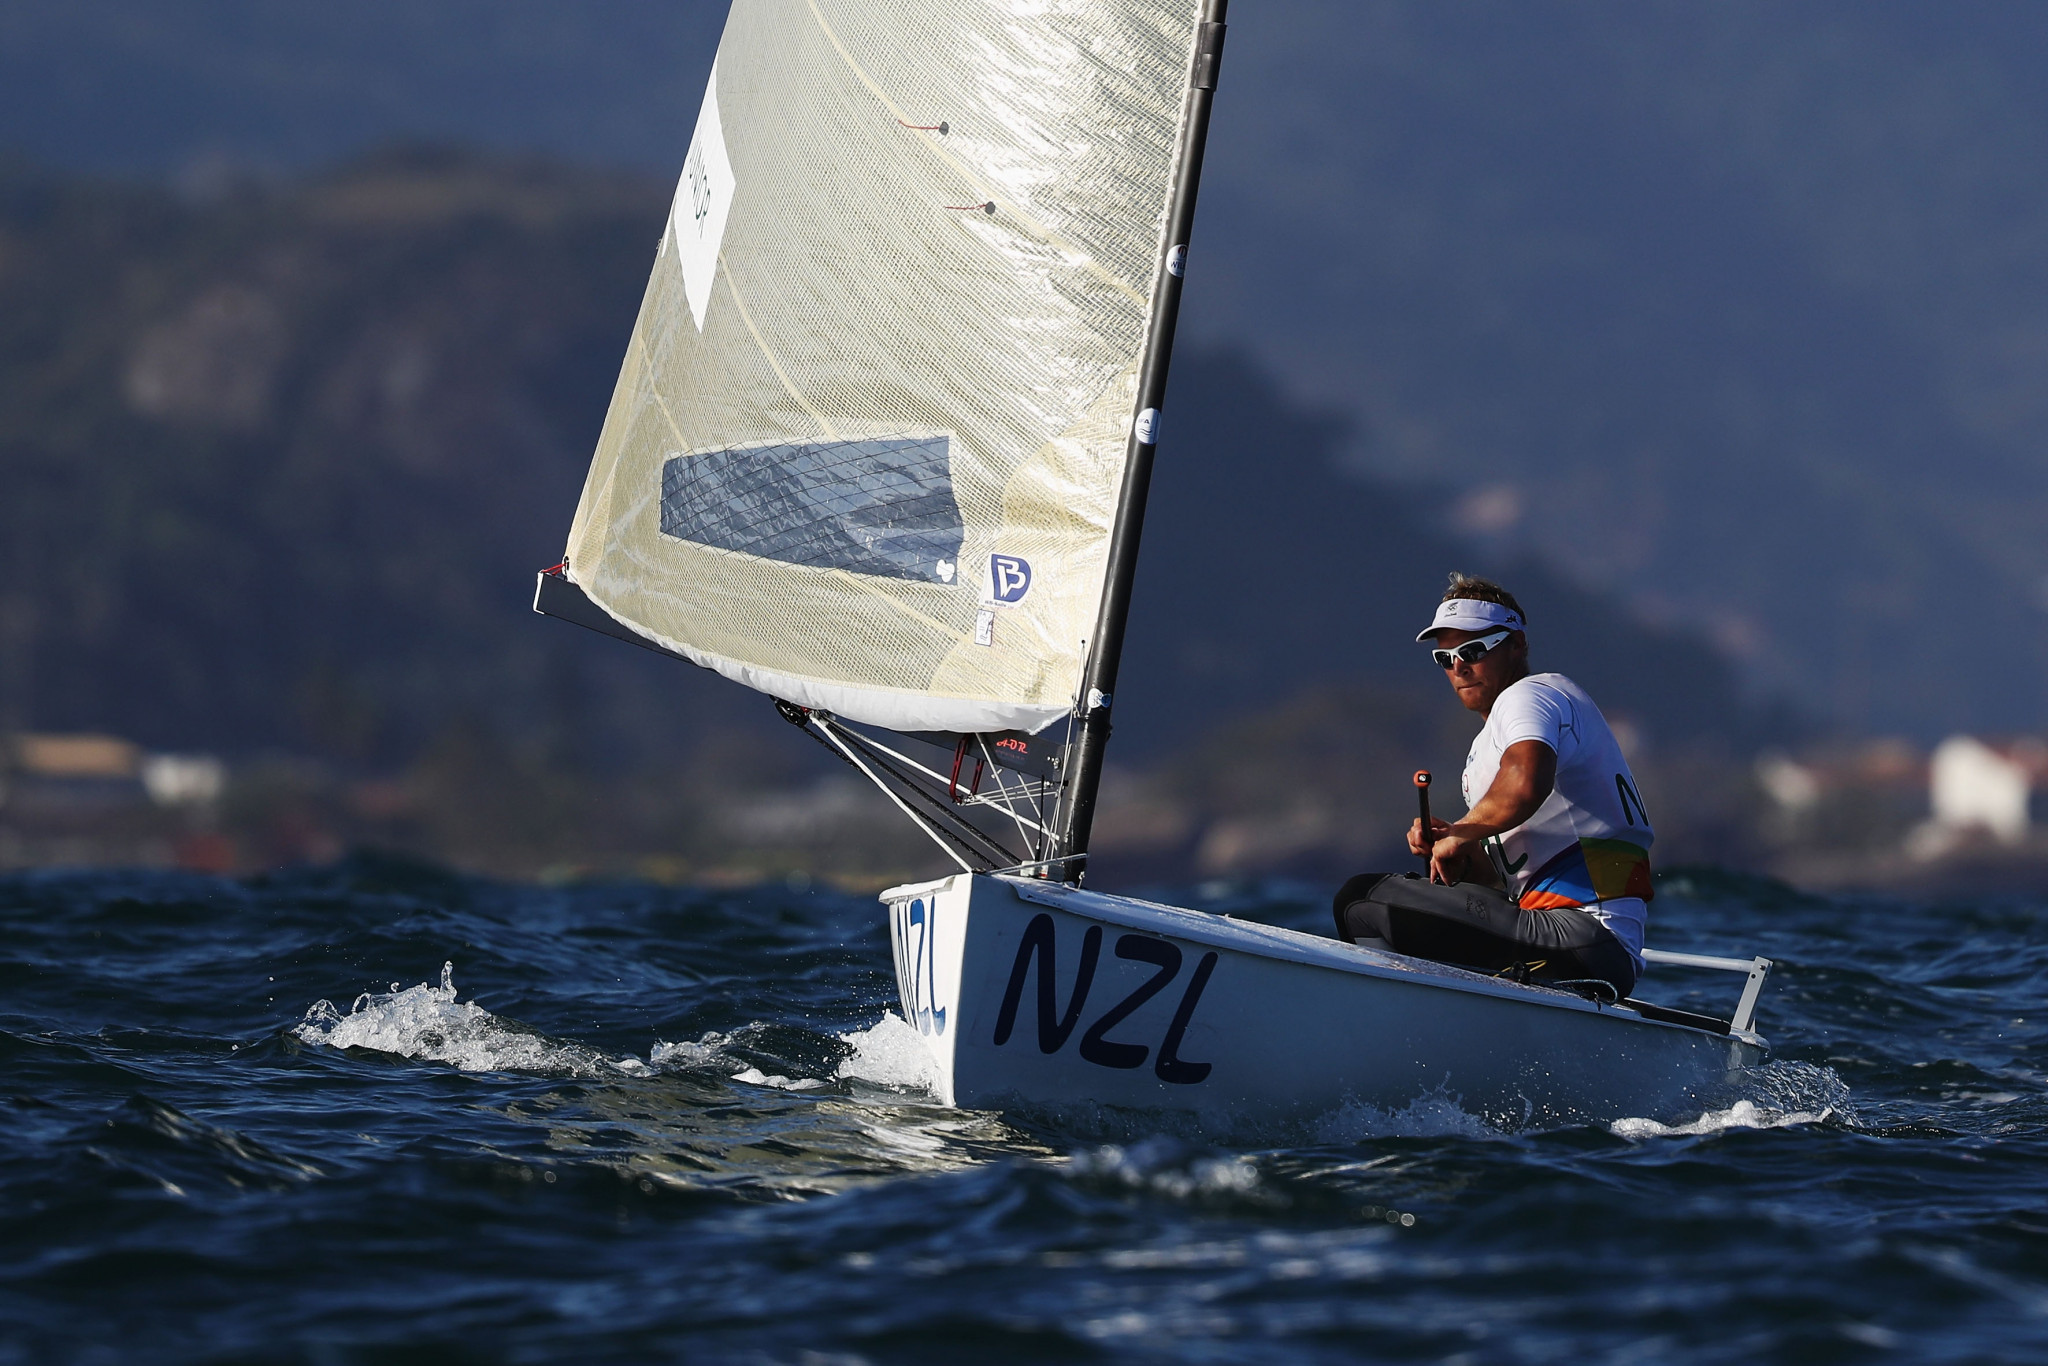 New Zealand's Josh Junior has taken a 14-point lead in the Finn Gold Cup overall standings ©Getty Images